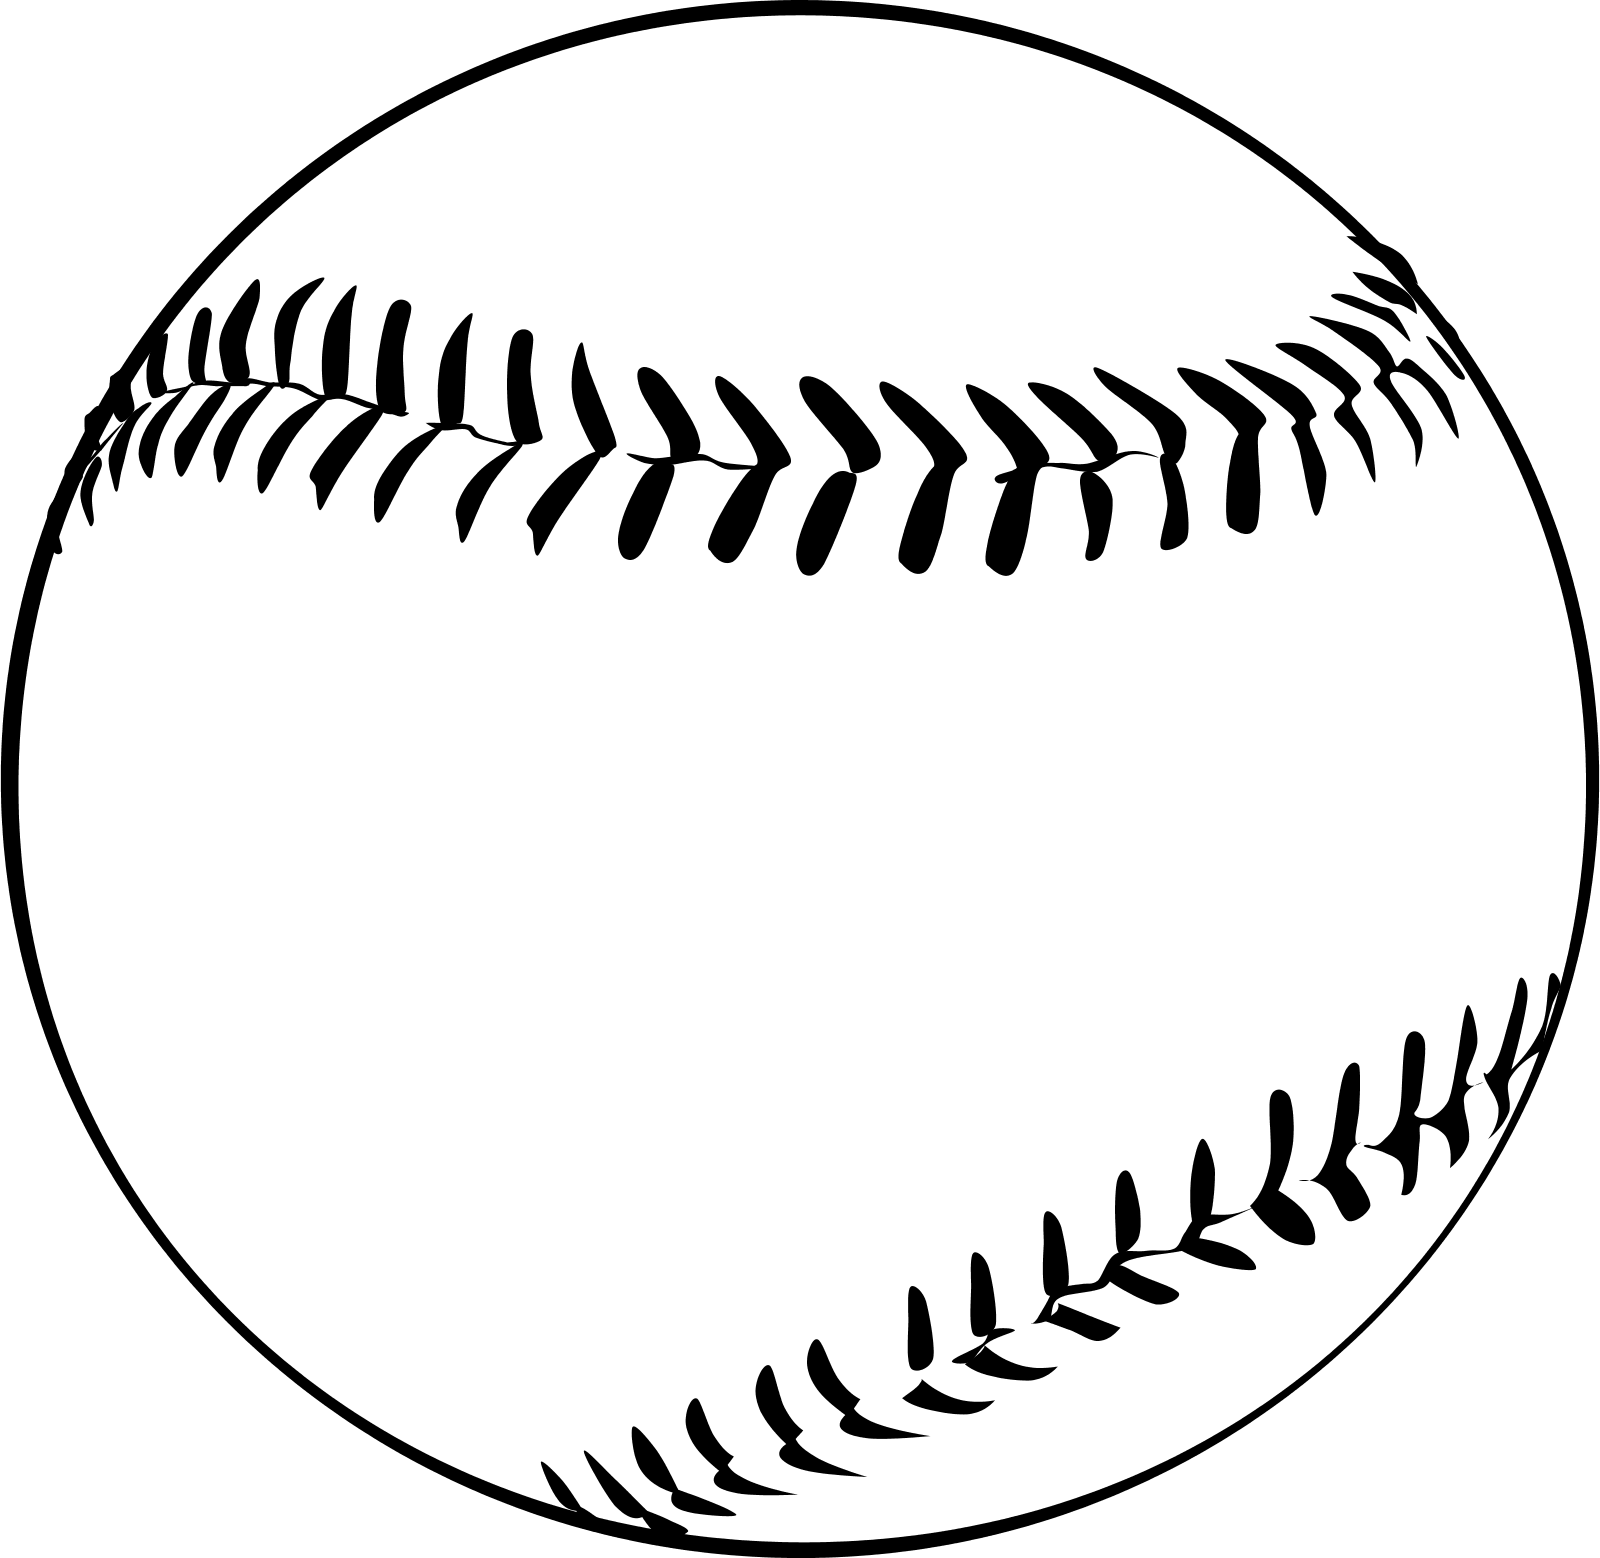 Baseball lines clipart image free download 28+ Collection of Baseball Ball Clipart Png | High quality, free ... image free download